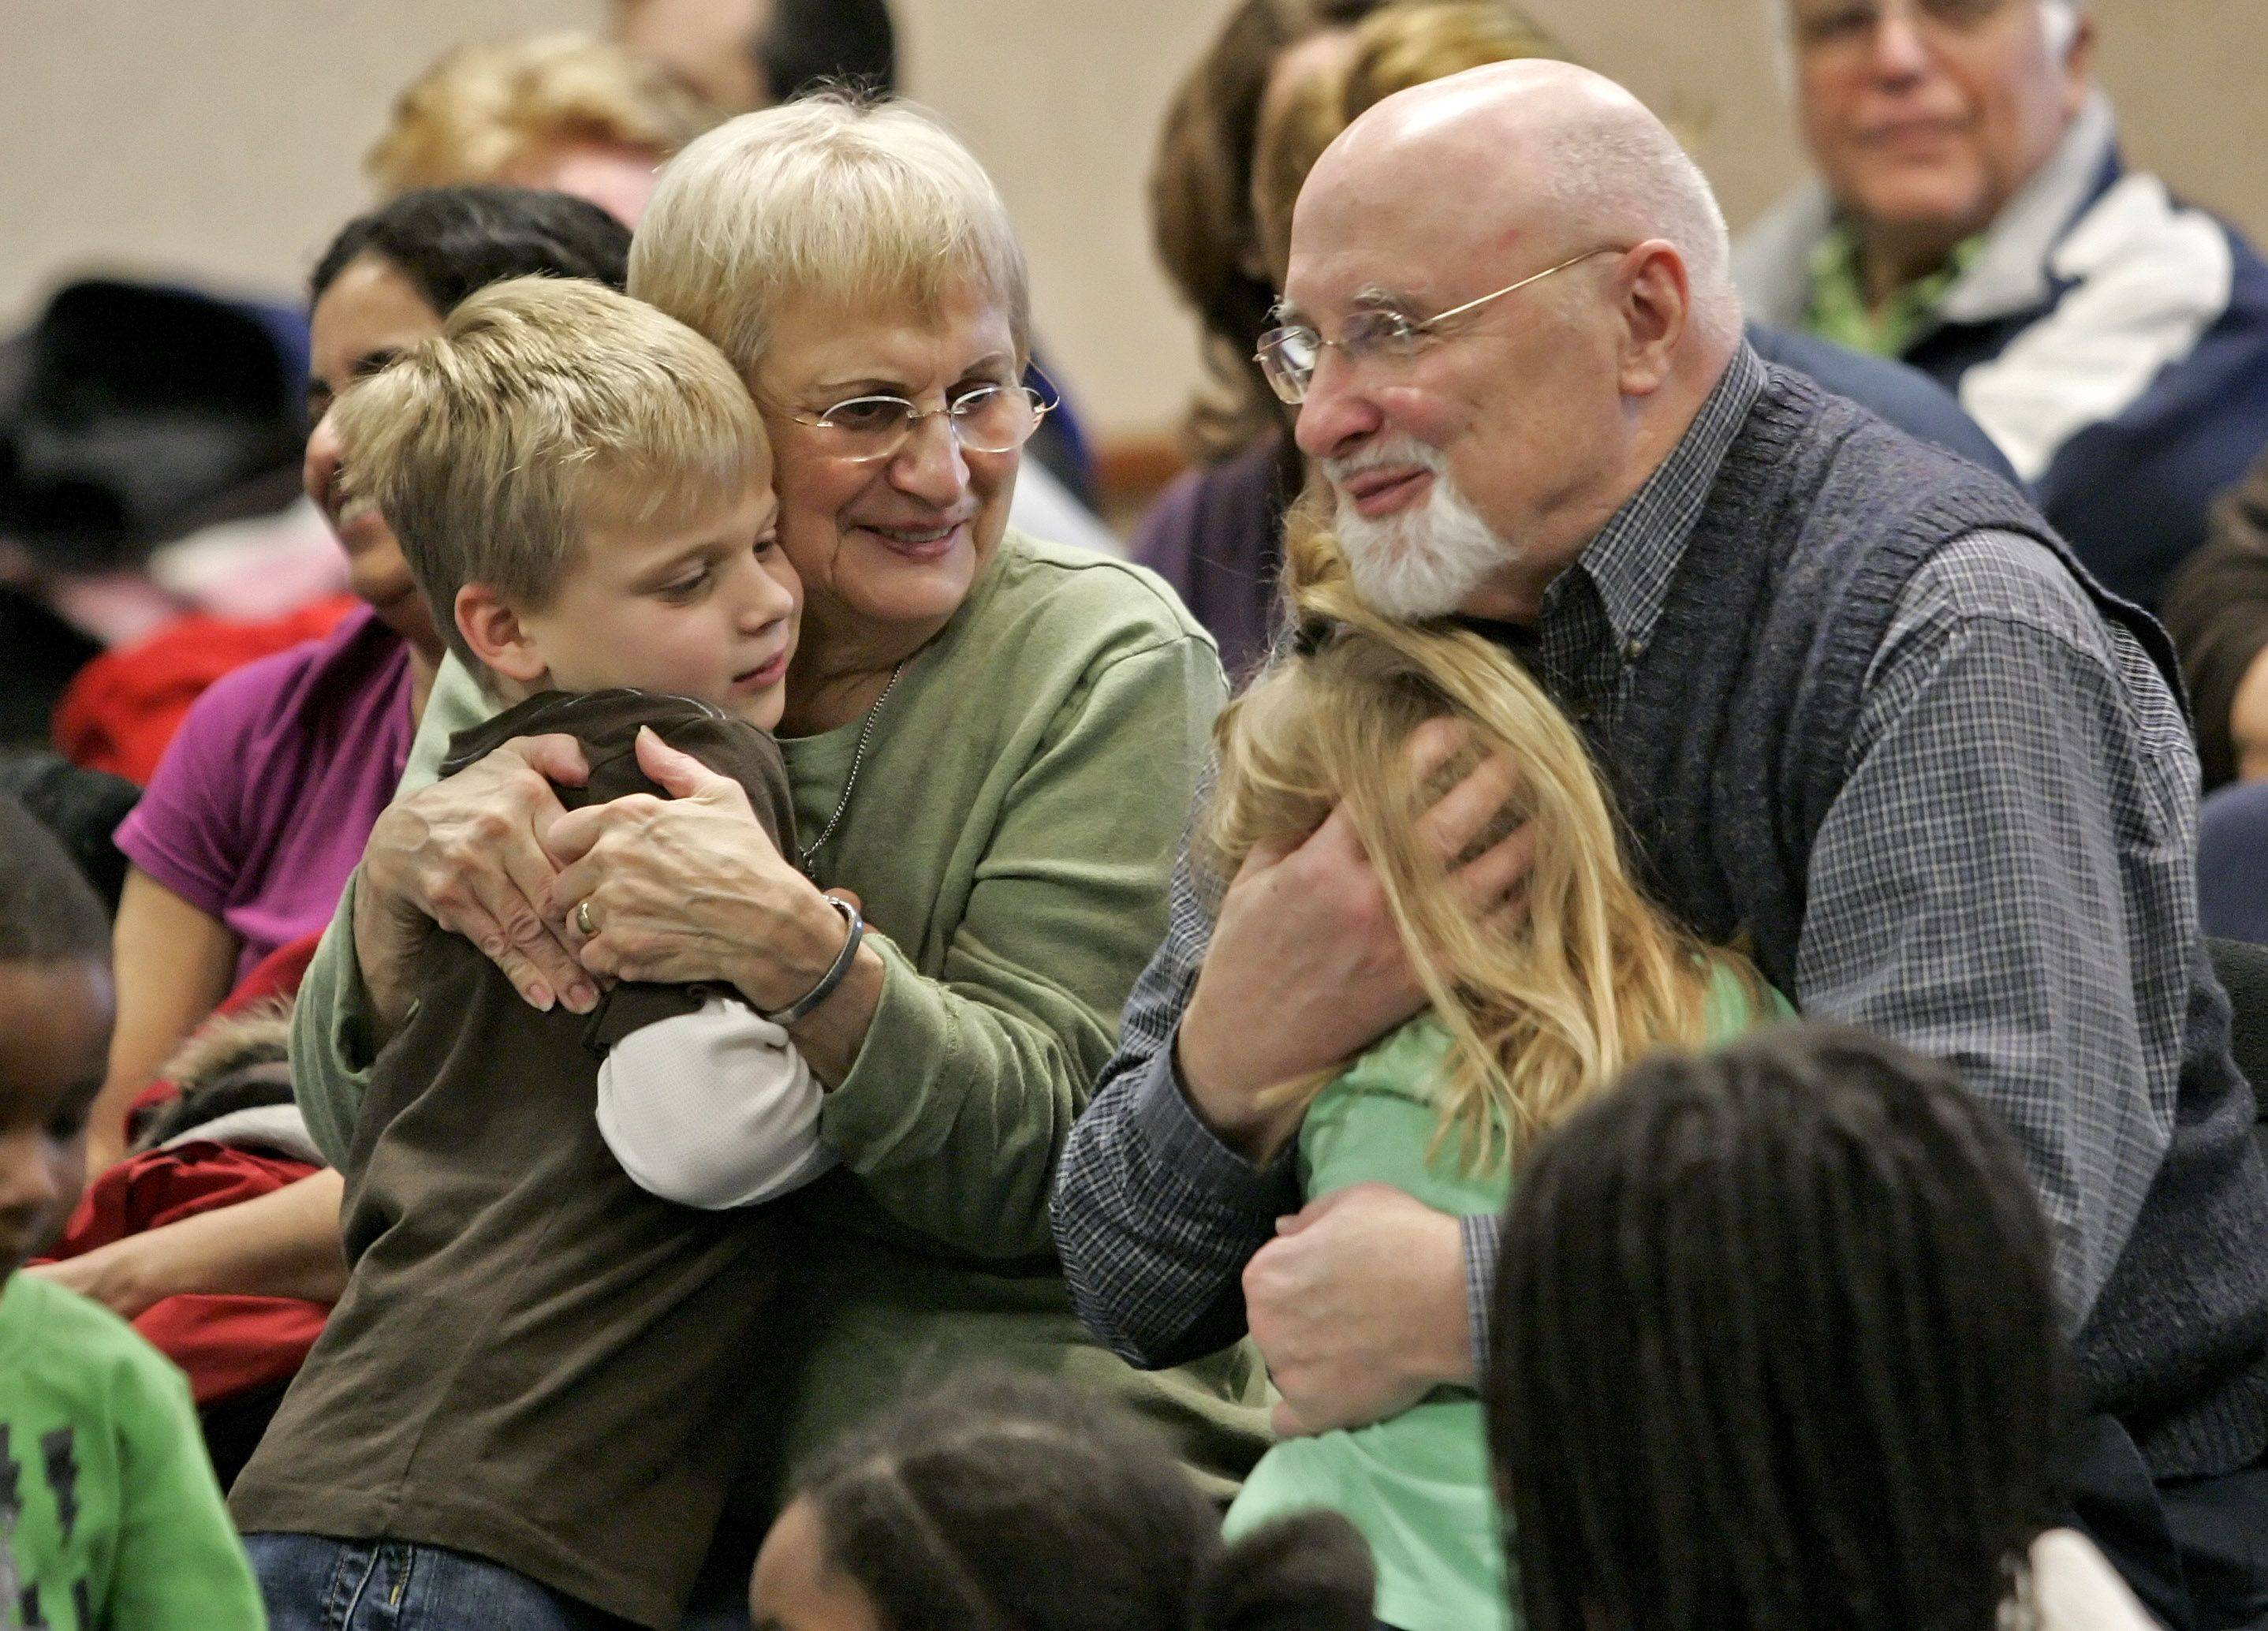 Tillie and John Scanlan get a hug from their grandkids Henry Scanlan, 7 and Shannon Doyle, 5 after a countdown to noon New Year's at Fremont Public Library in Mundelein Thursday. All are from Mundelein.